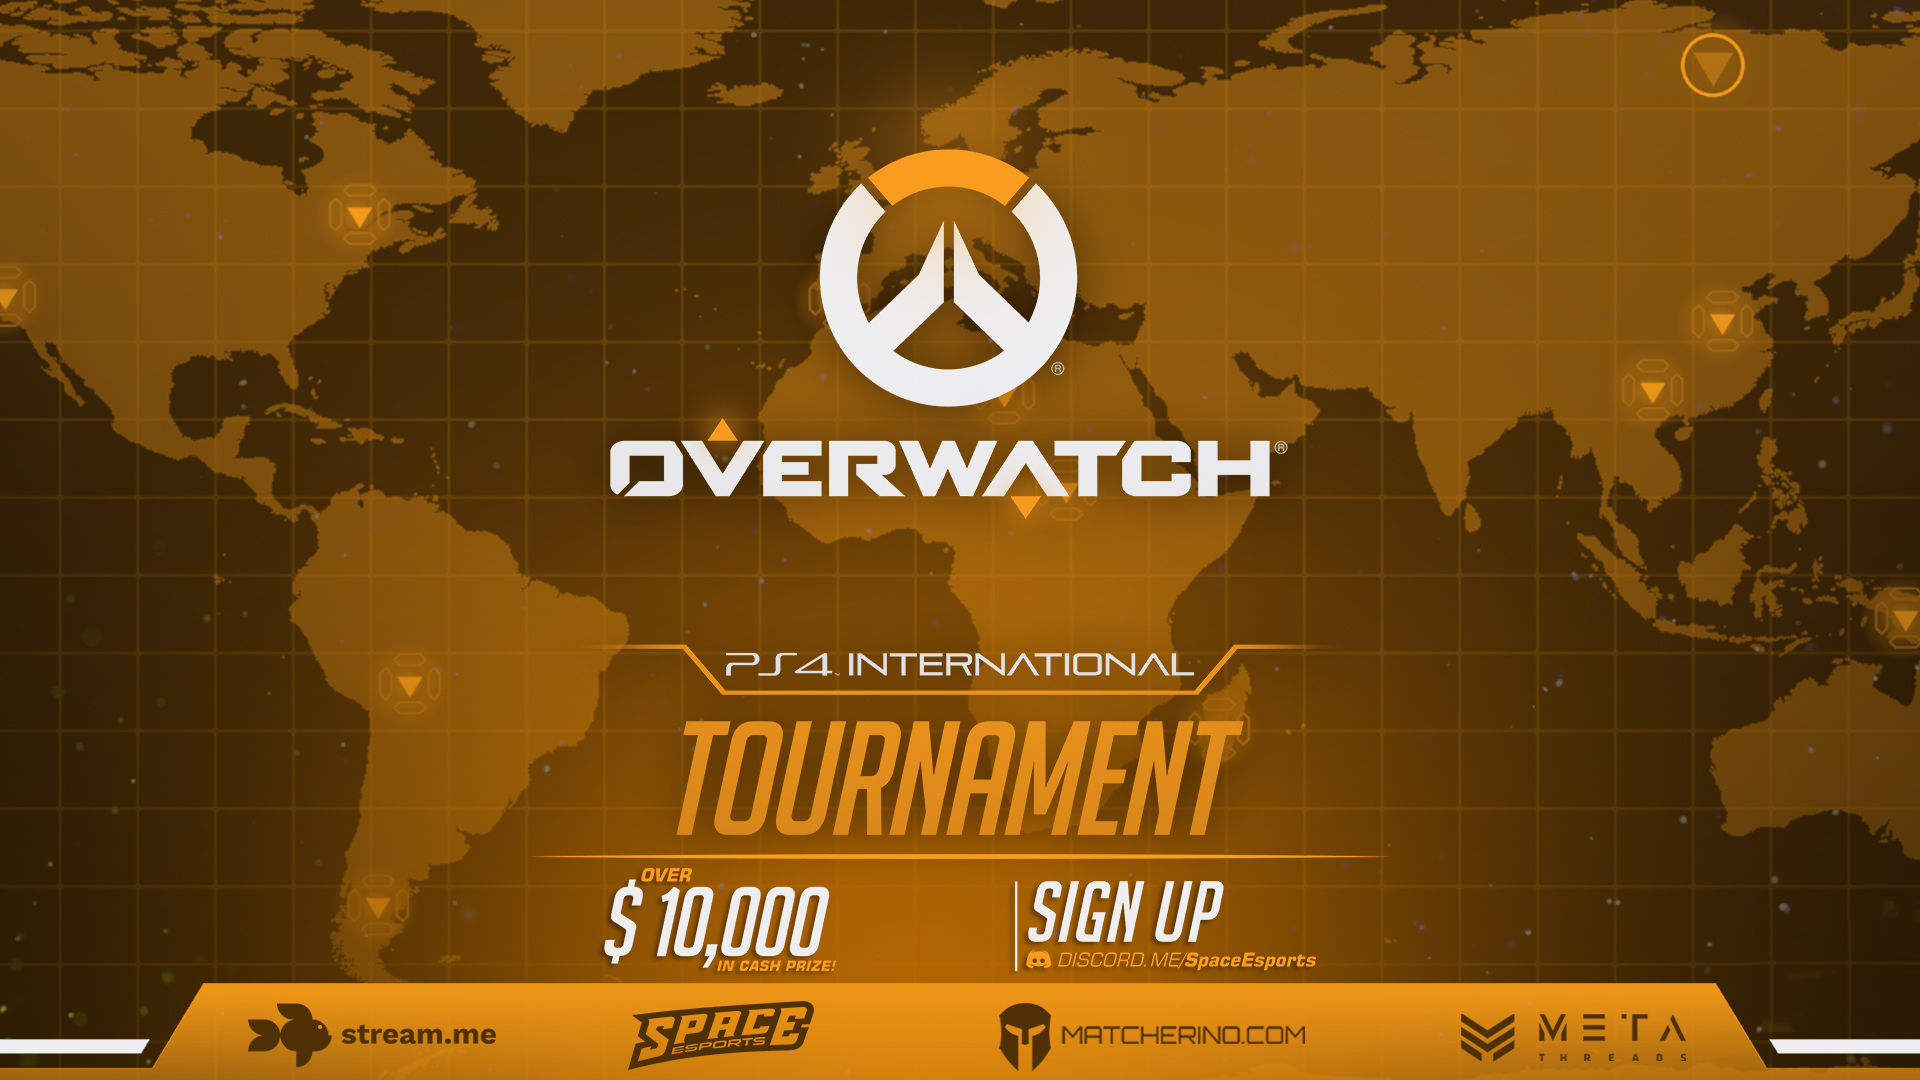 overwatch-ps4-international-tournament-begins-oct-16-2018-frkigamers.com.jpg